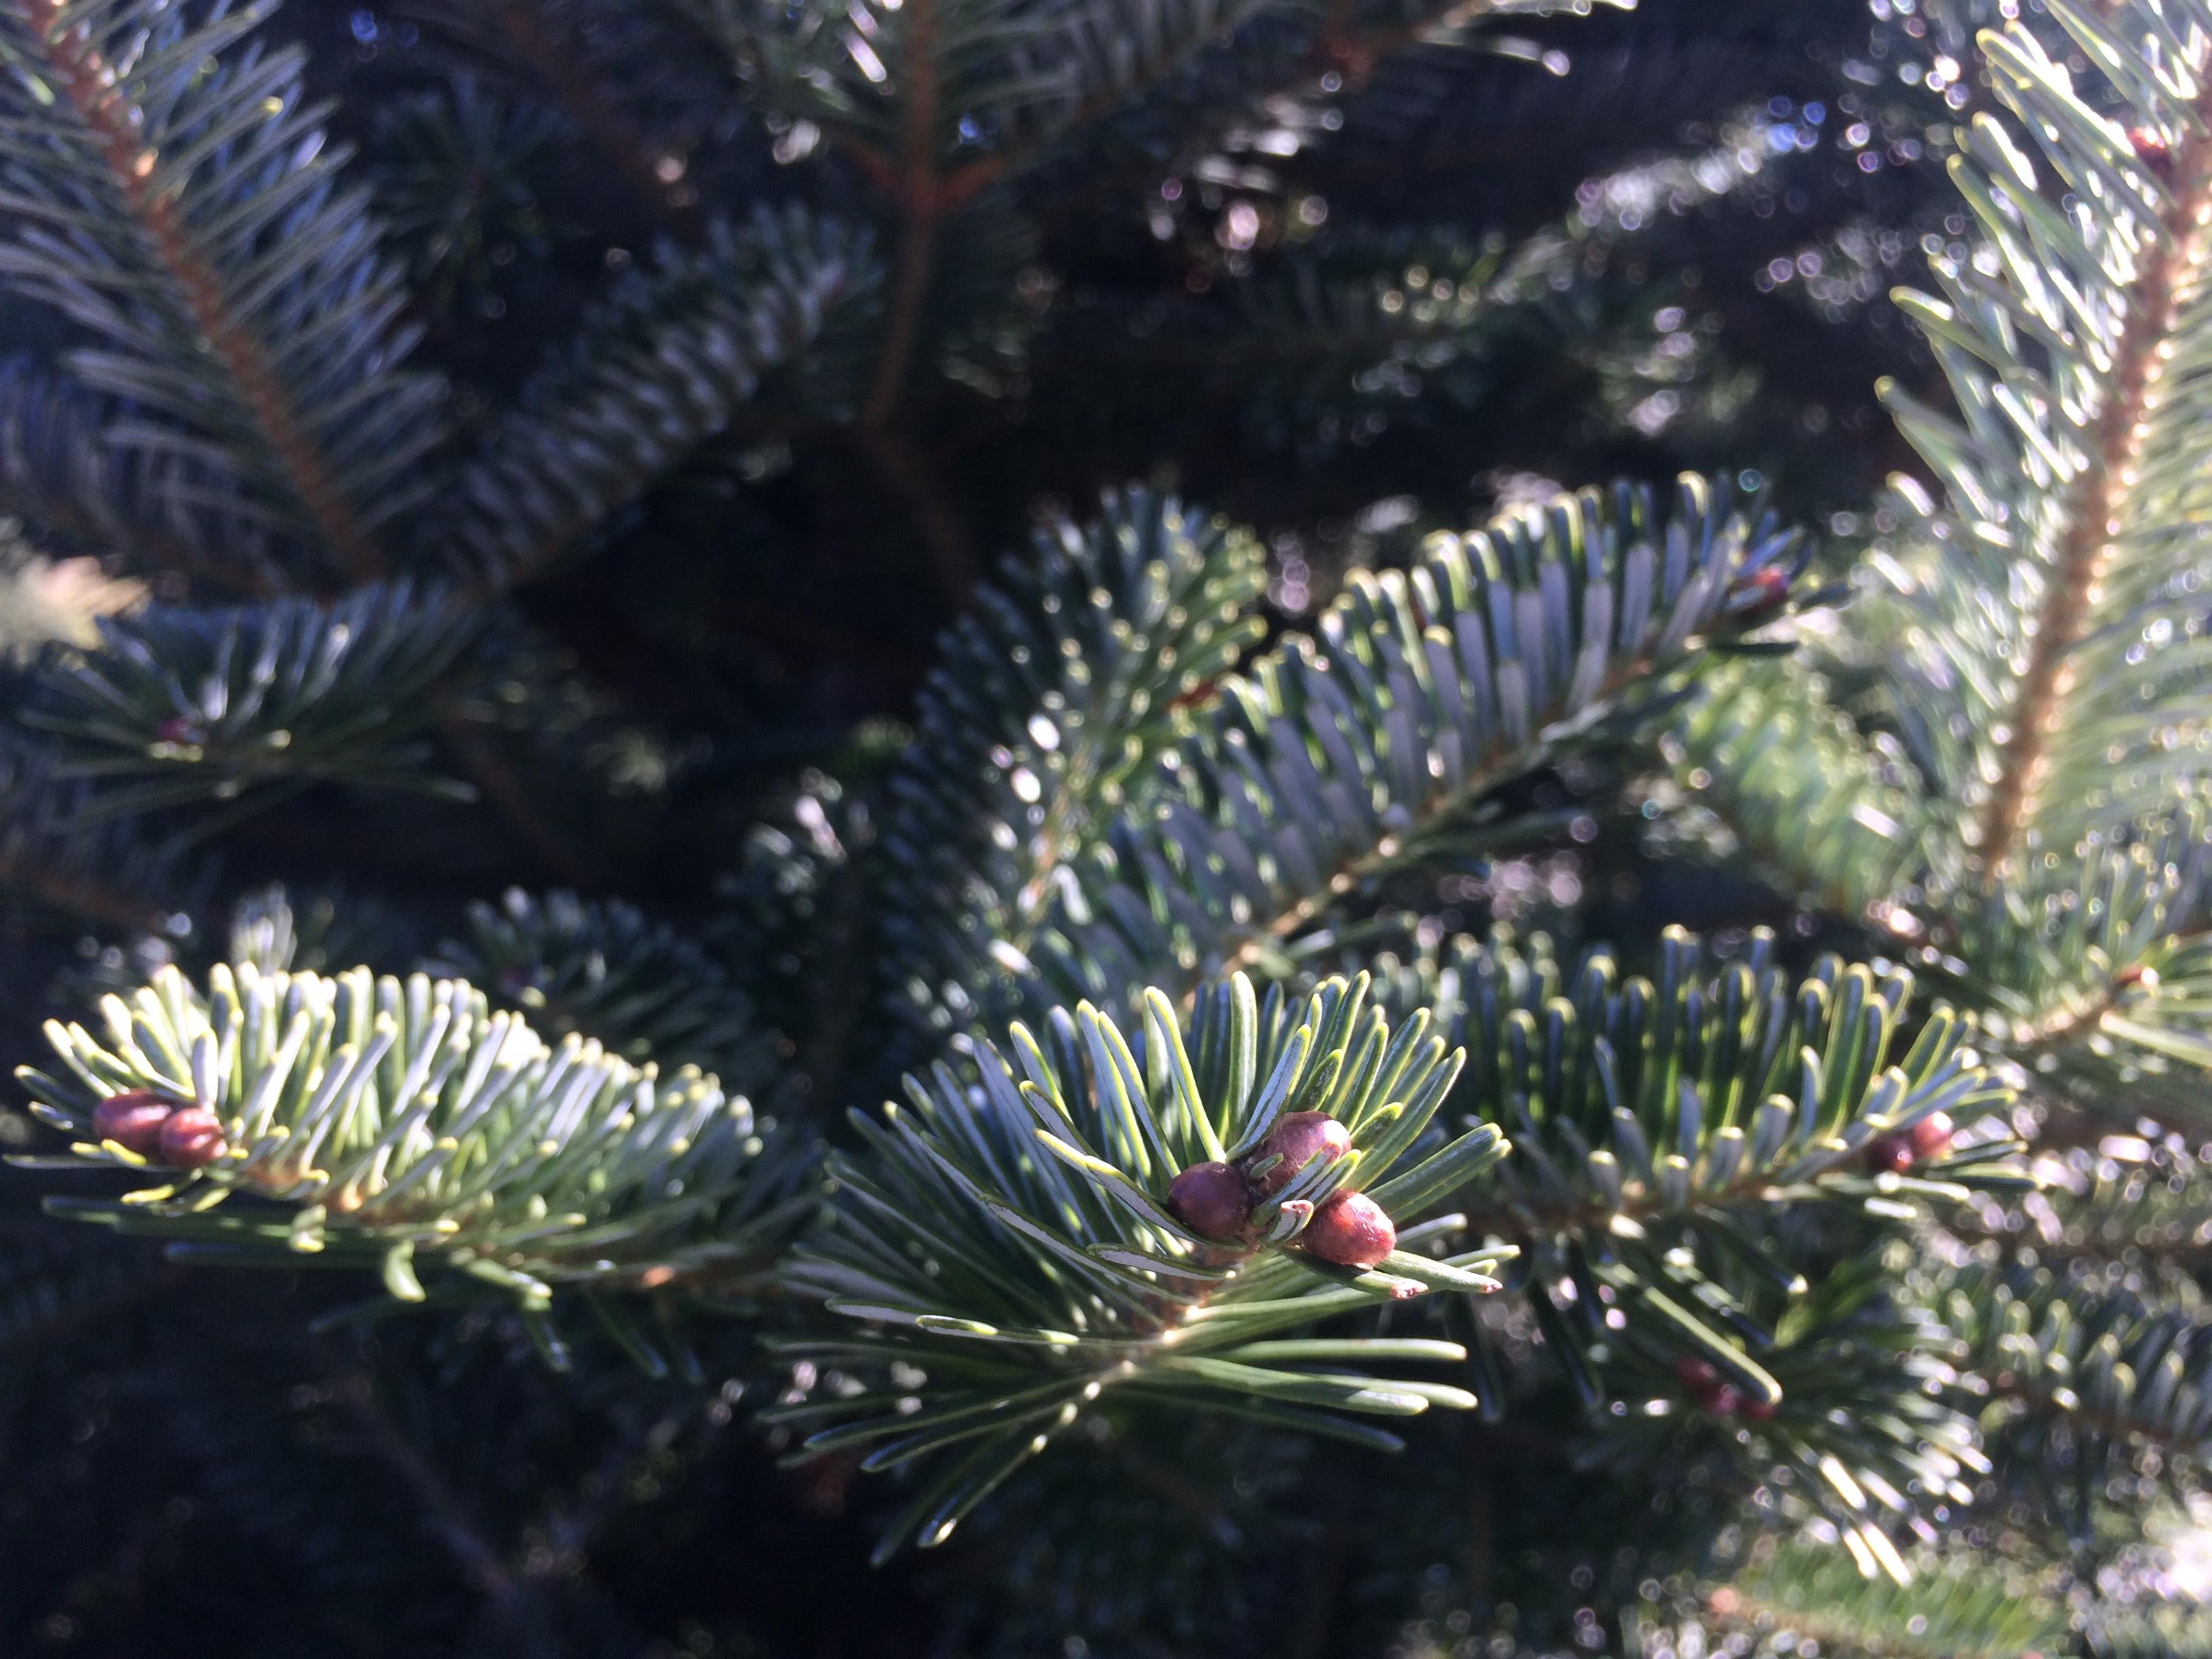 According to the North Carolina Christmas Tree Association,{&amp;nbsp;}The North Carolina Fraser fir Christmas tree is the most popular Christmas tree in North America and is shipped into every state in the U.S. as well as the Caribbean Islands, Mexico, Canada, Bermuda, Japan and other points all over the world. (Photo credit: WLOS Staff)<p></p>